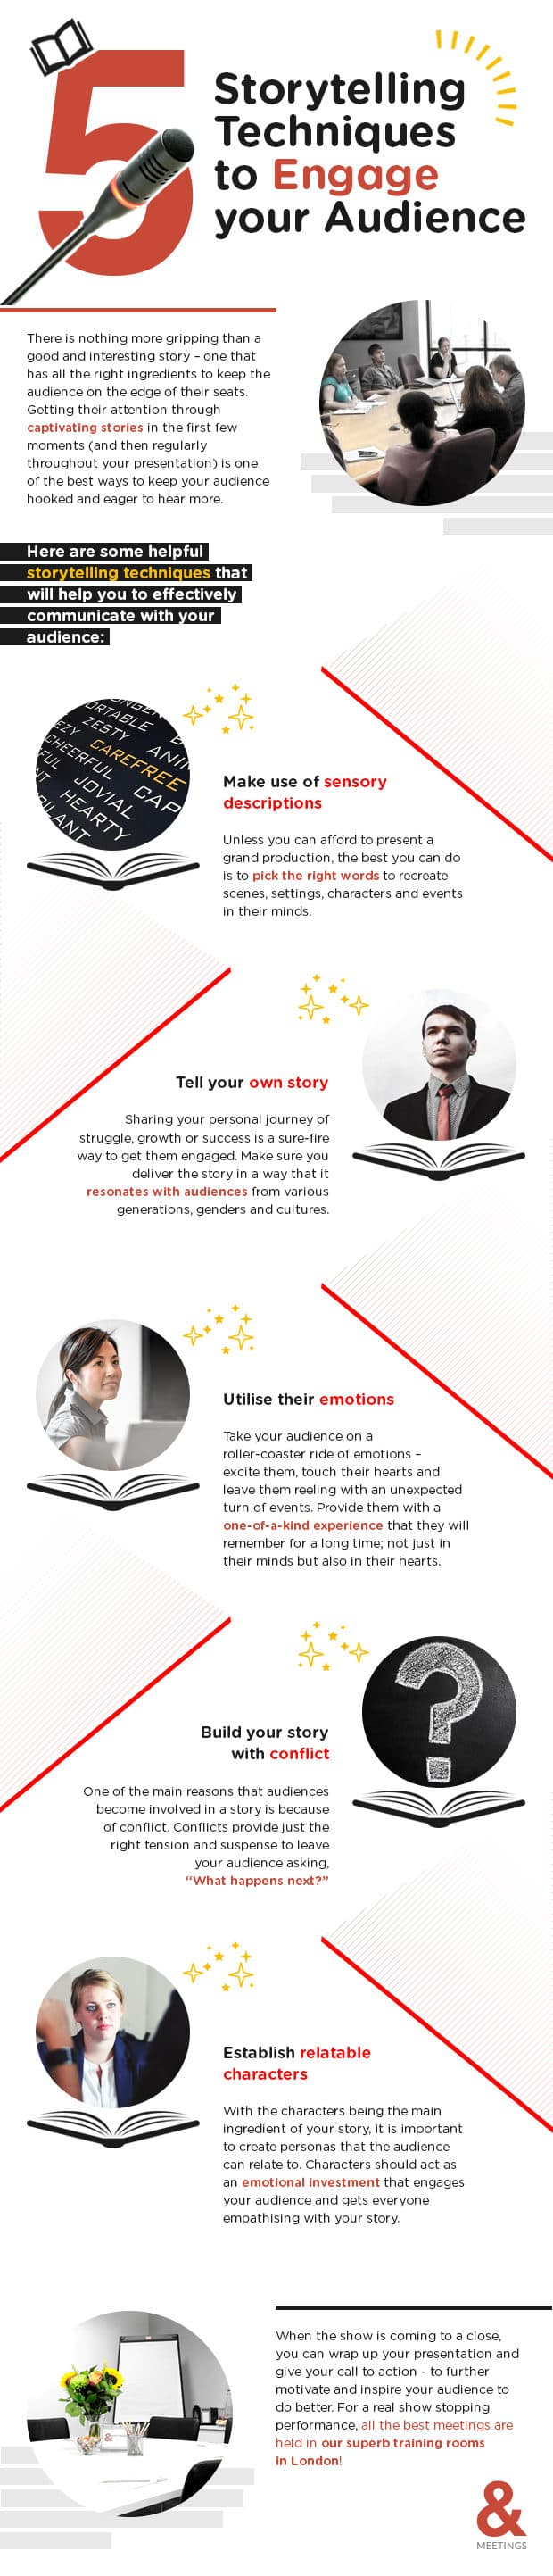 Infographic illustrating 5 storytelling techniques to engage your audience